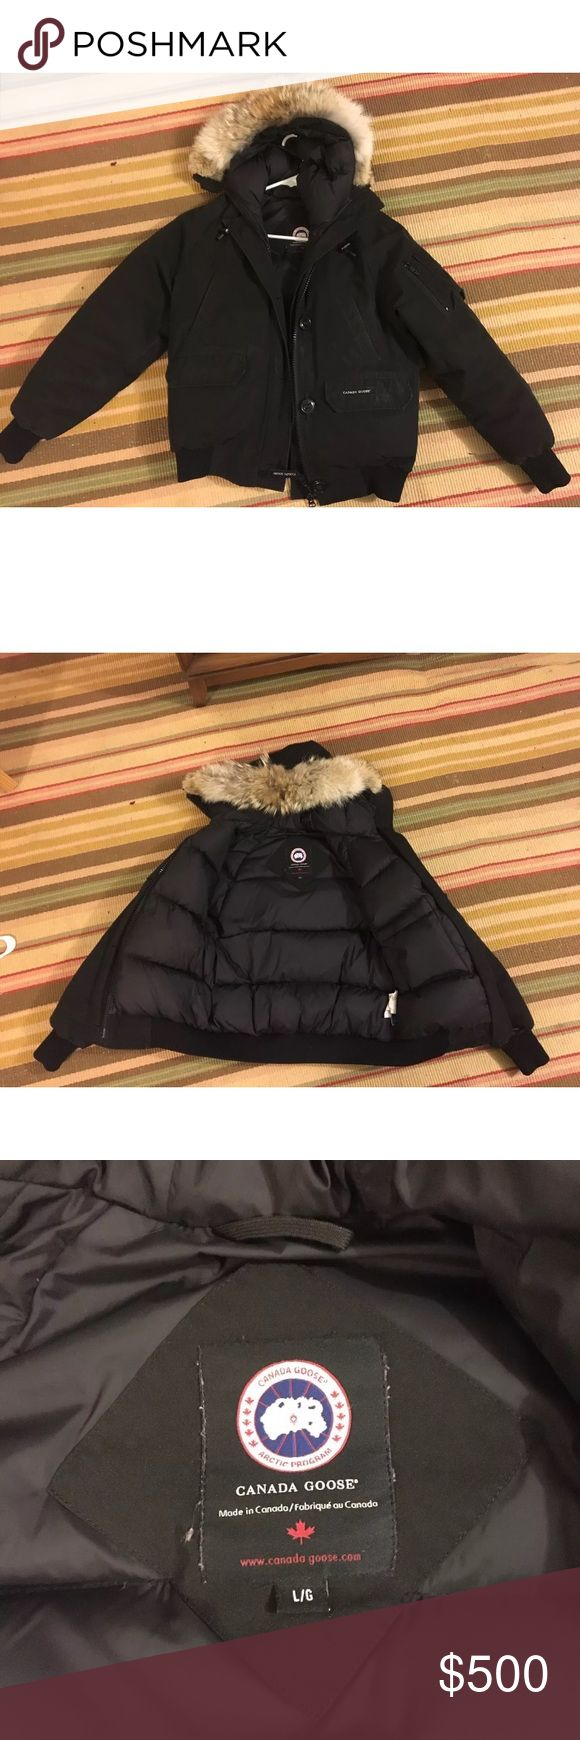 Authentic Canada Goose Chilliwack Bomber Black Original Style Chilliwack Bomber Jacket size LARGE. Pre owned, worn for a few seasons. Few signs of wear near wrists but overall great condition. Fur in perfect condition. Canada Goose Jackets & Coats Puffers